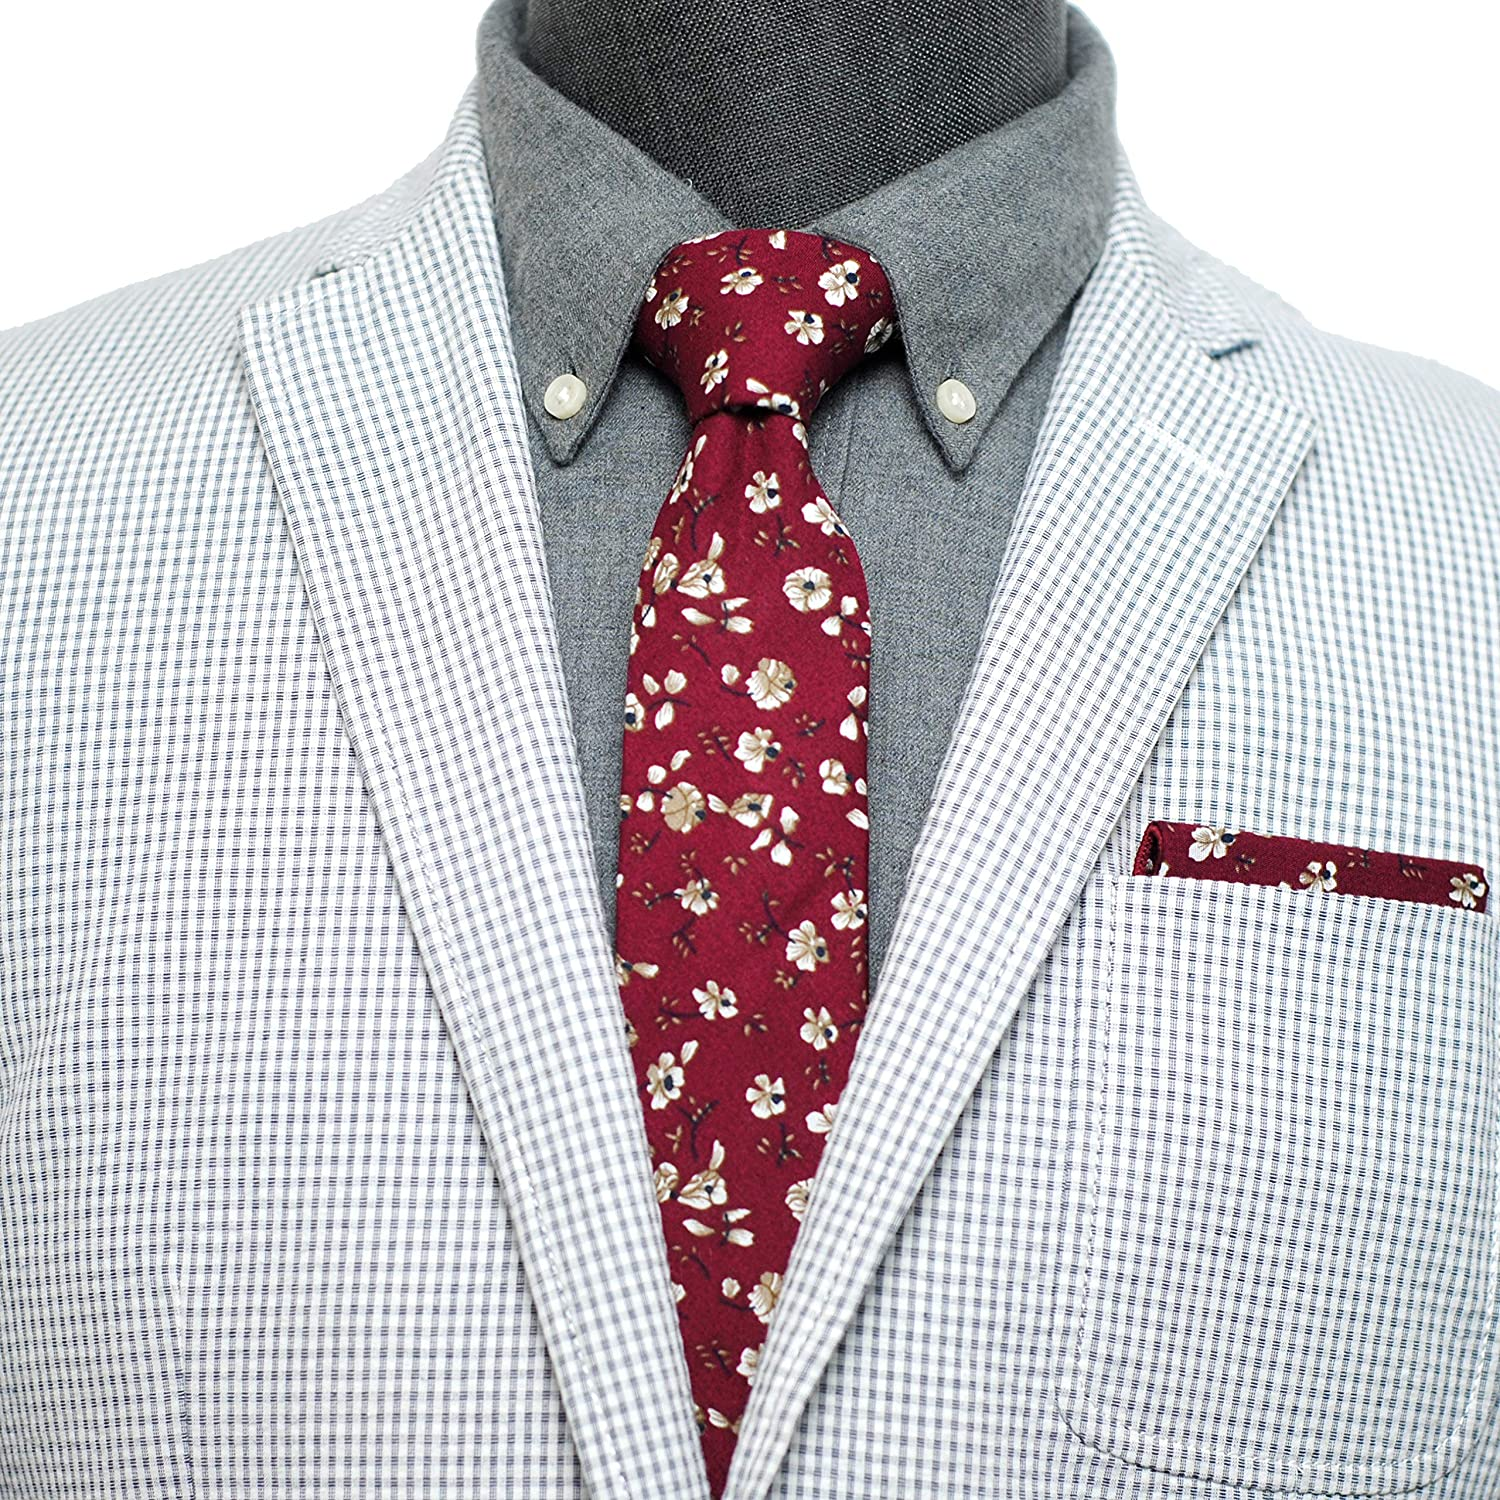 Mens Casual Skinny Floral Tie Combo Set with Flower Pocket Square 2/½ Cotton Necktie Hand Made by ZENXUS TC047